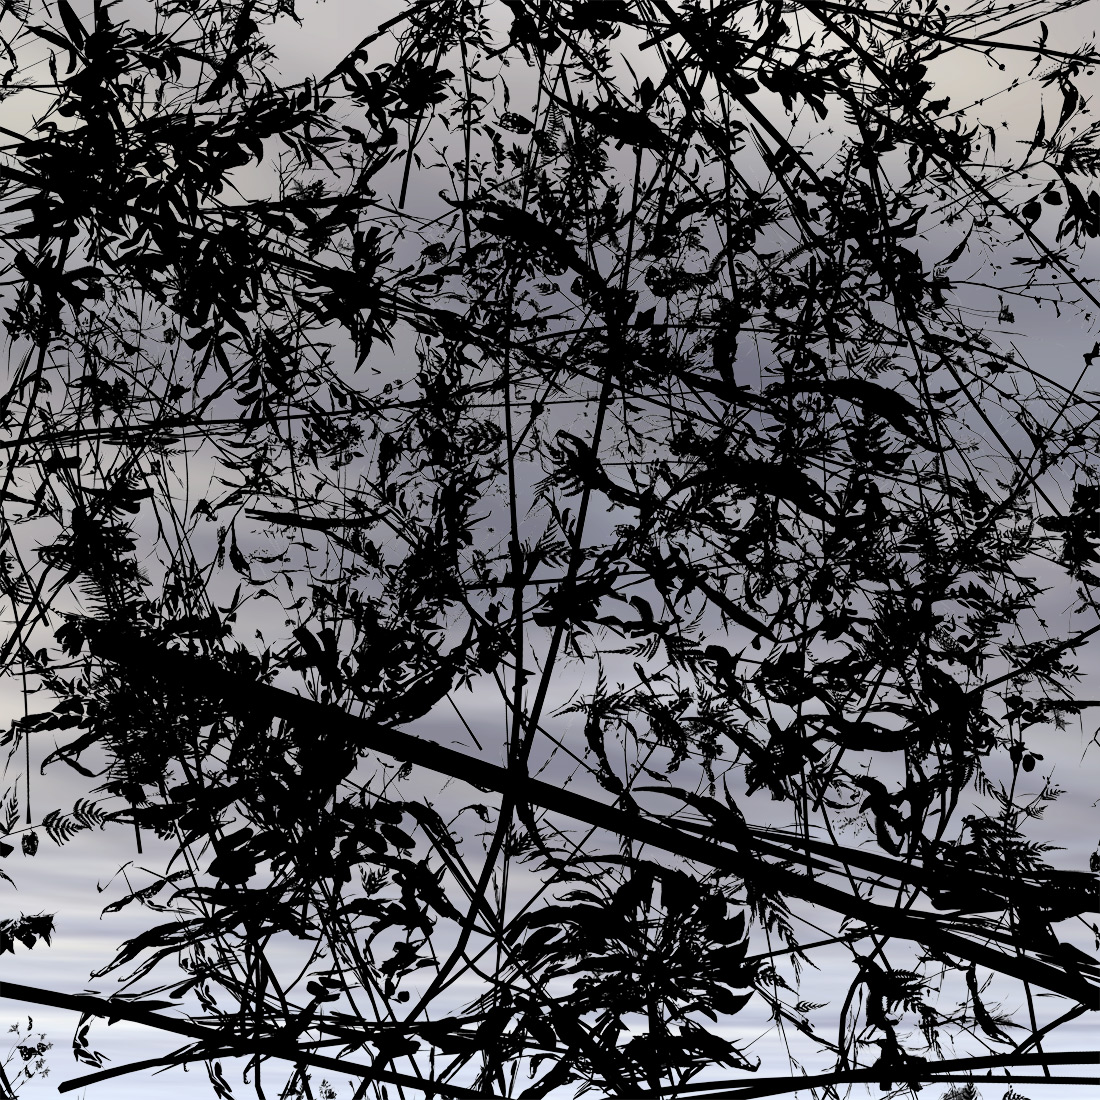 Floating Weeds 6, 2008, C-Print, 69 x 69 cm